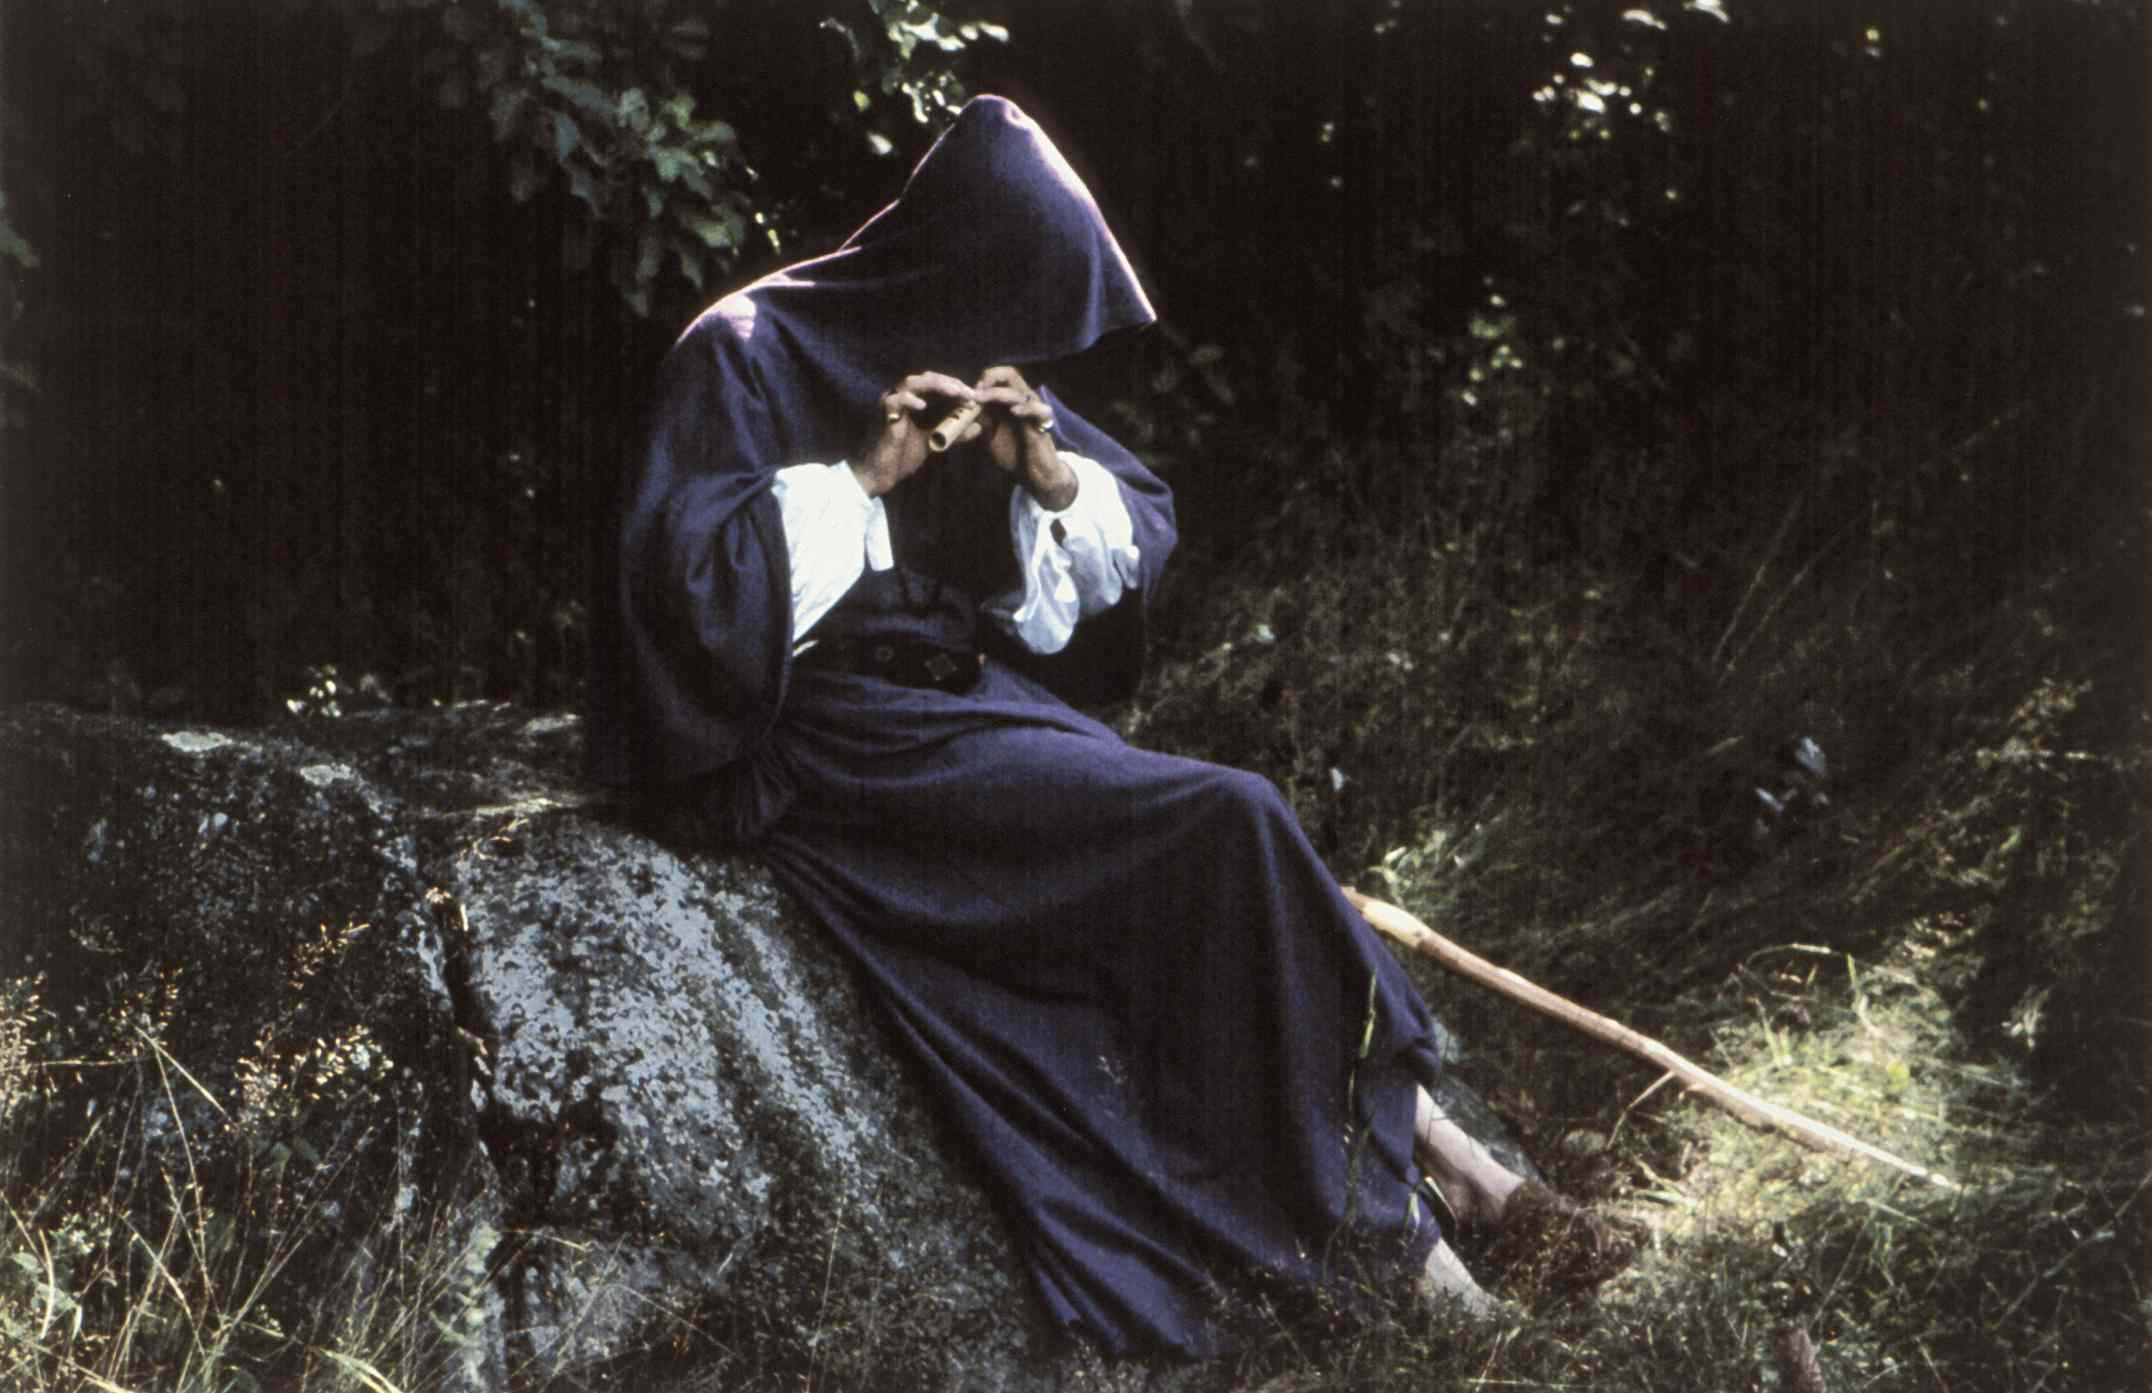 Person in hooded robe playing flute in forest